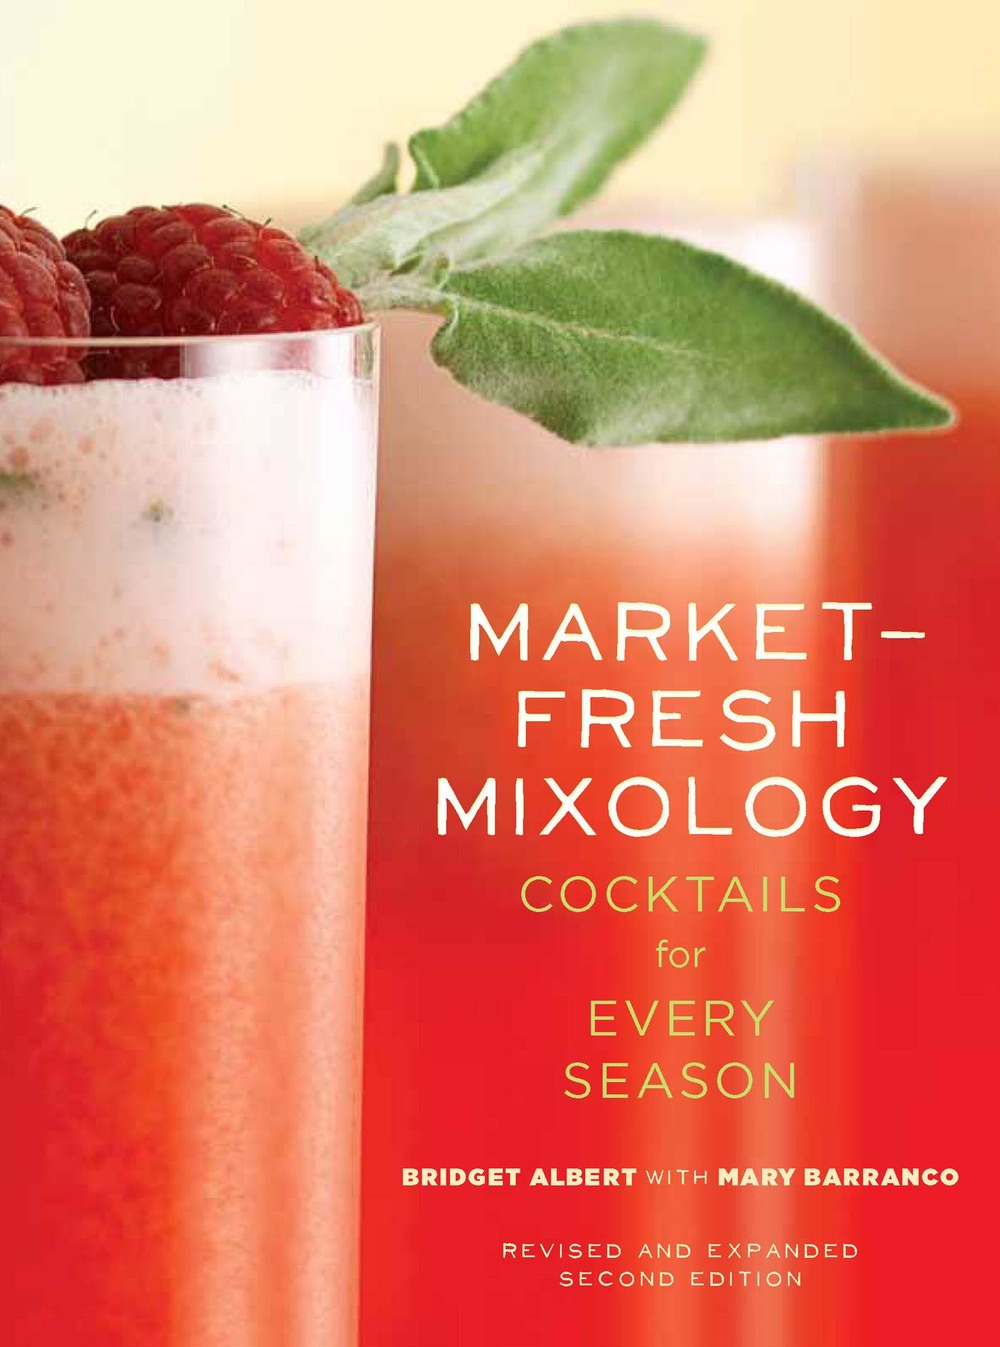 Market Fresh Mixology cookbook